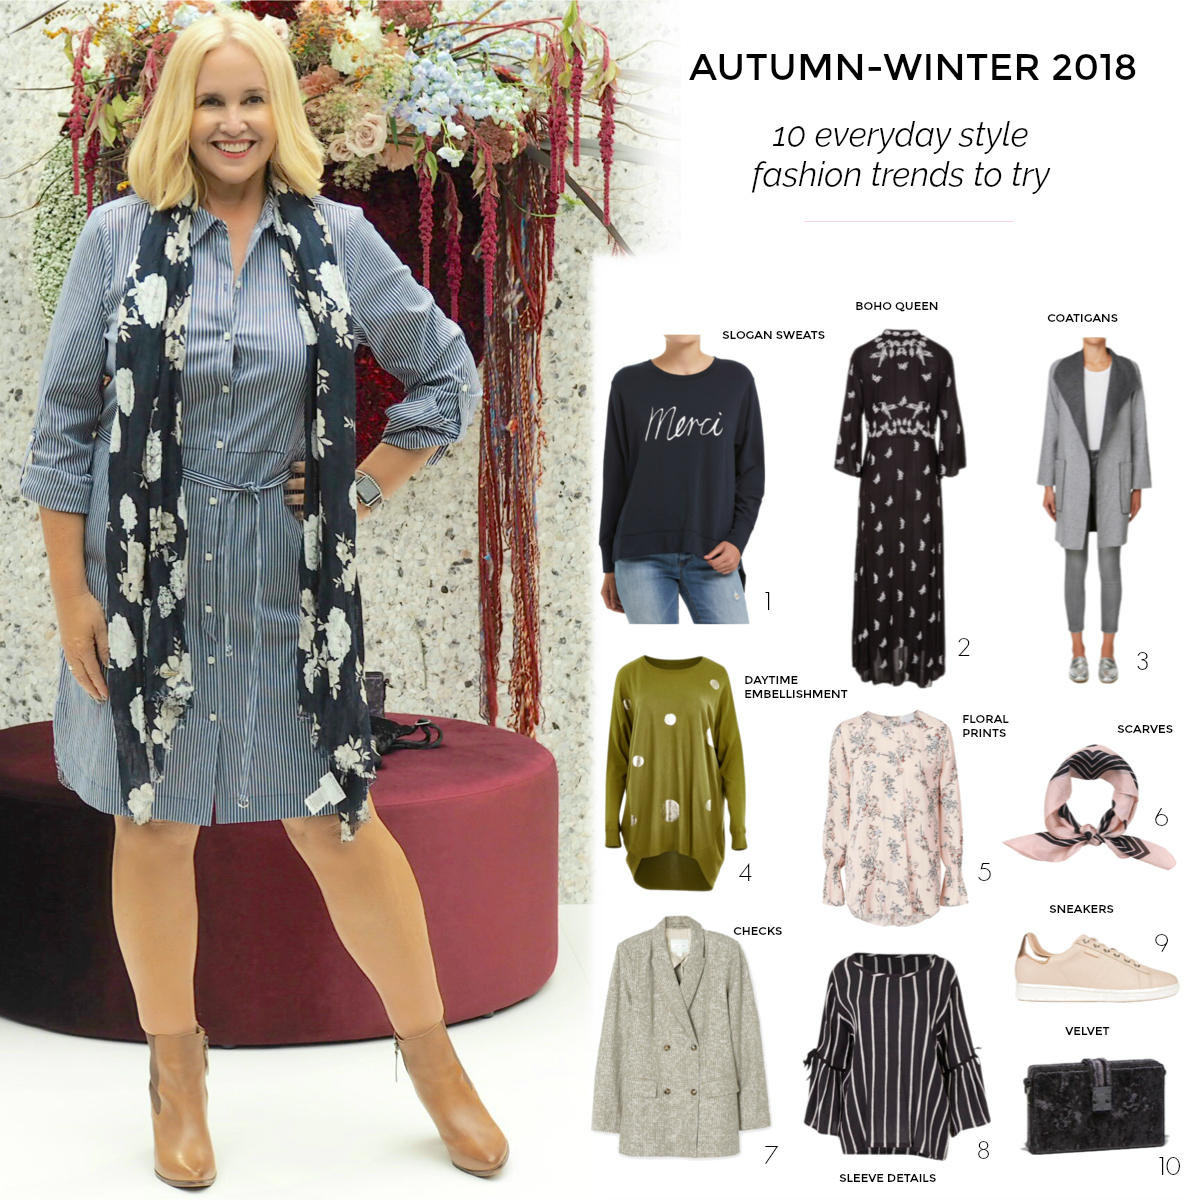 10 Everyday Style Fashion Trends For Autumn-winter 2018